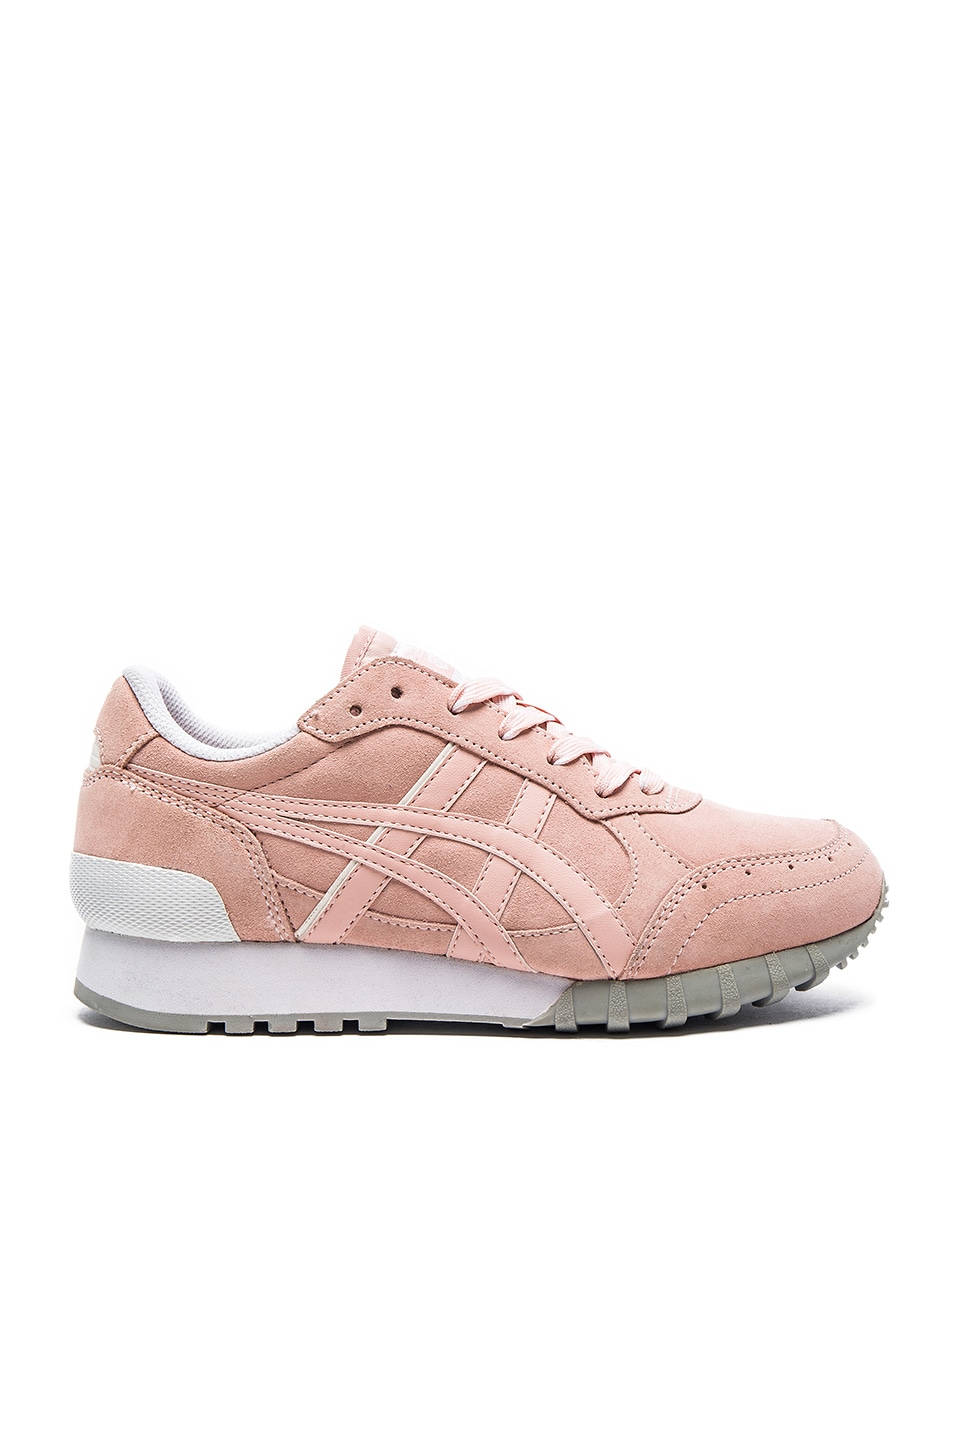 asics tiger backpack Pink